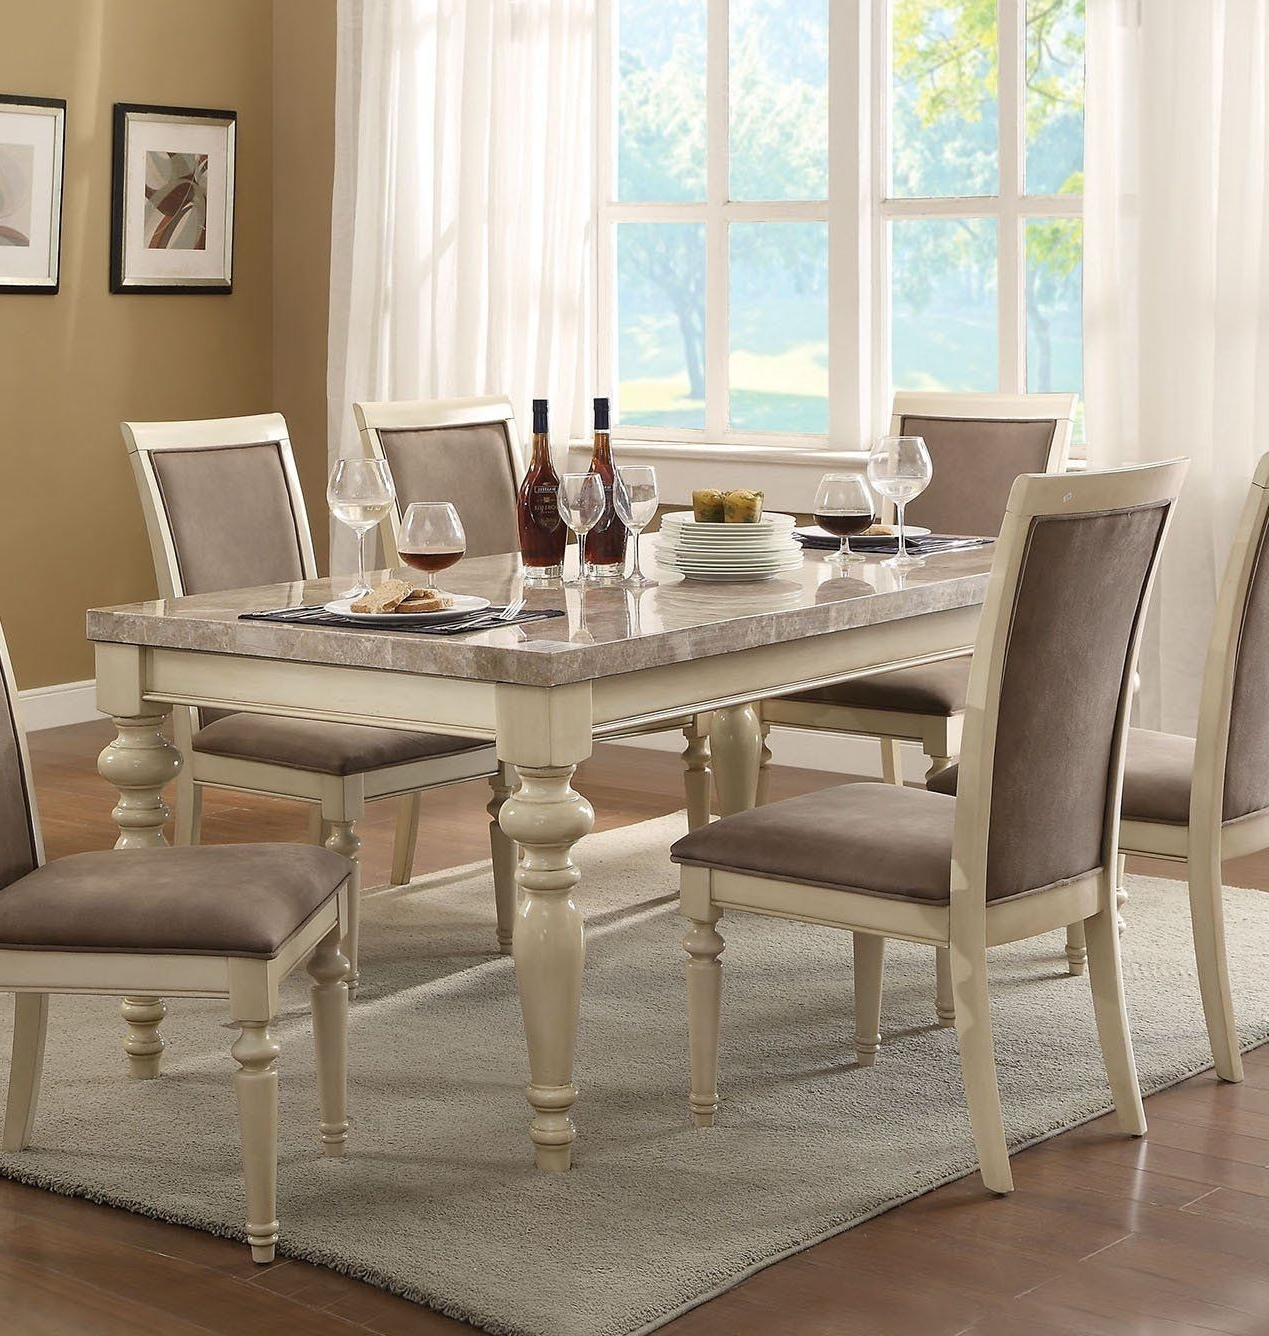 Acme 71705 Ryder Antique White Marble Top Dining Table (Gallery 13 of 25)